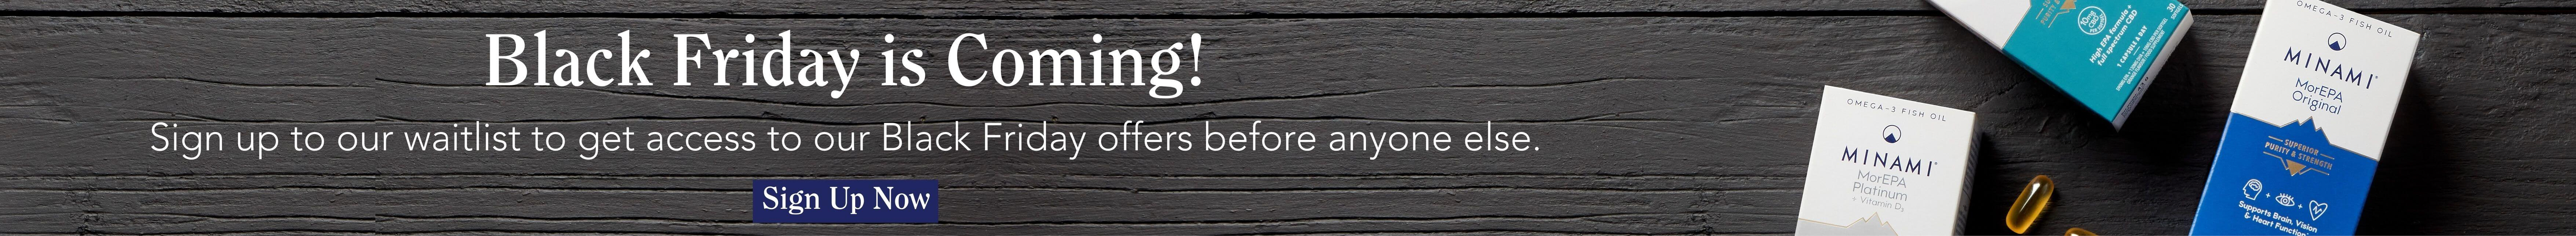 Black Friday is Coming Sign Up Banner